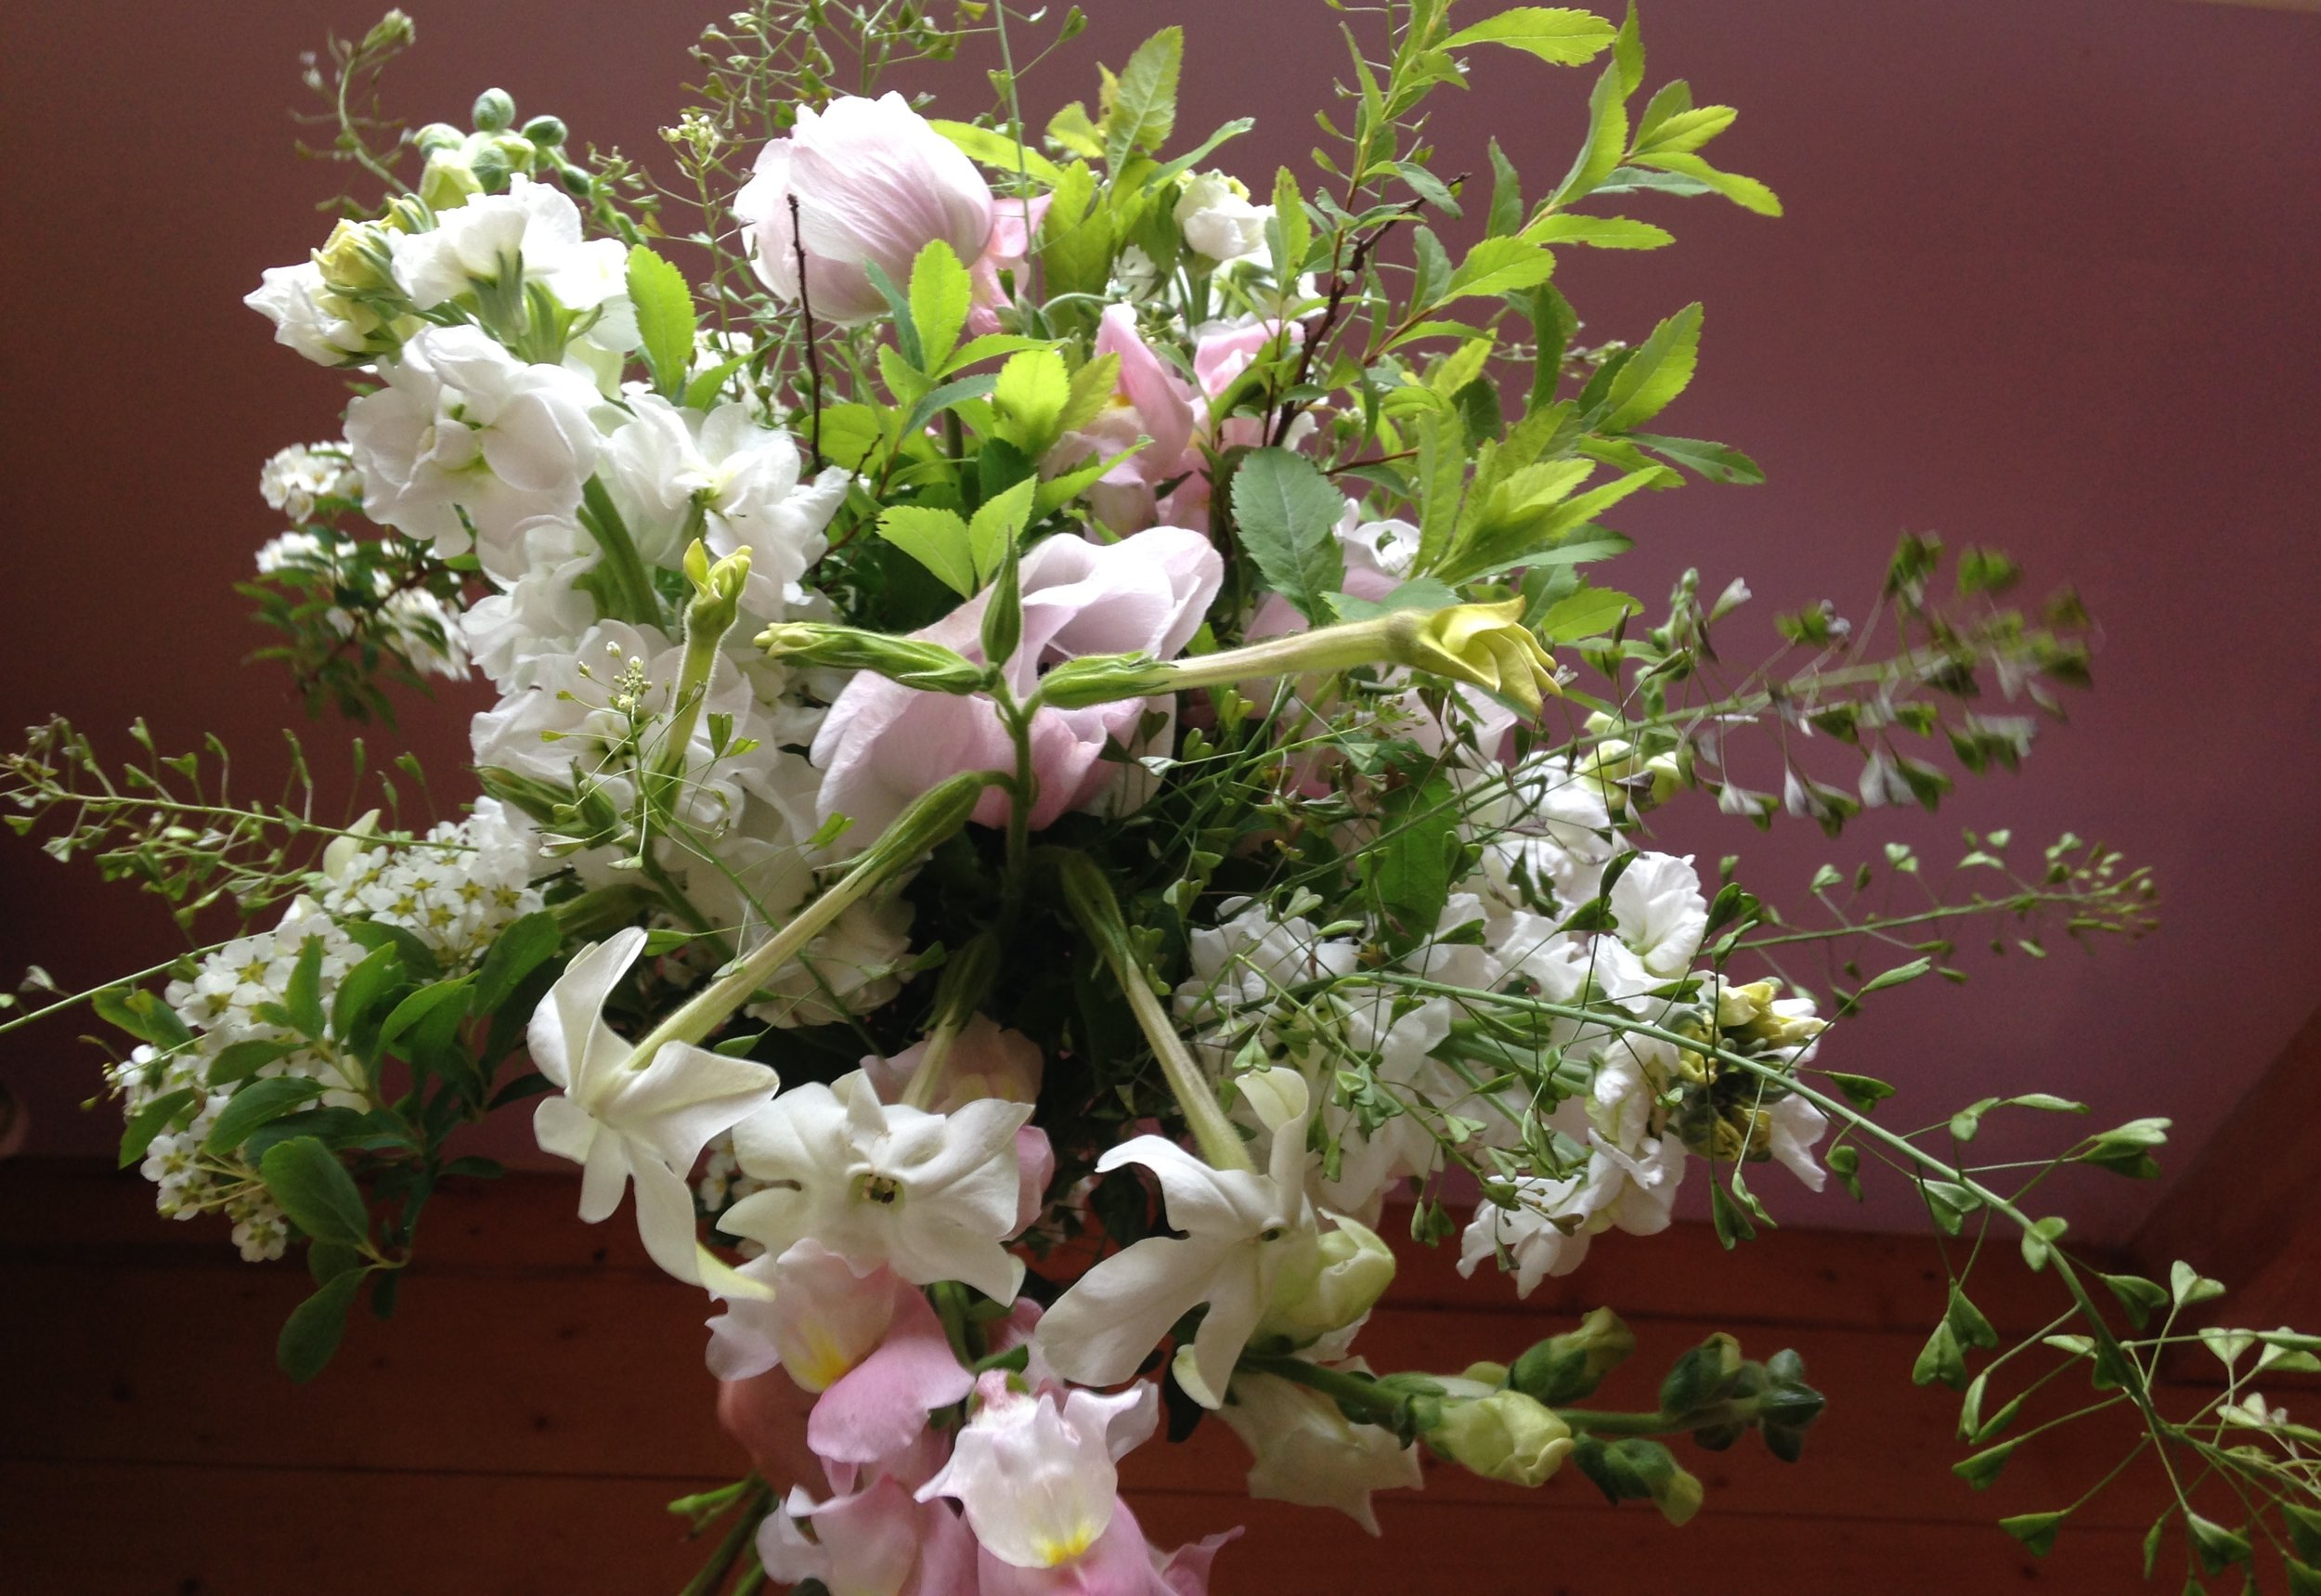 Want local flowers for your wedding? -